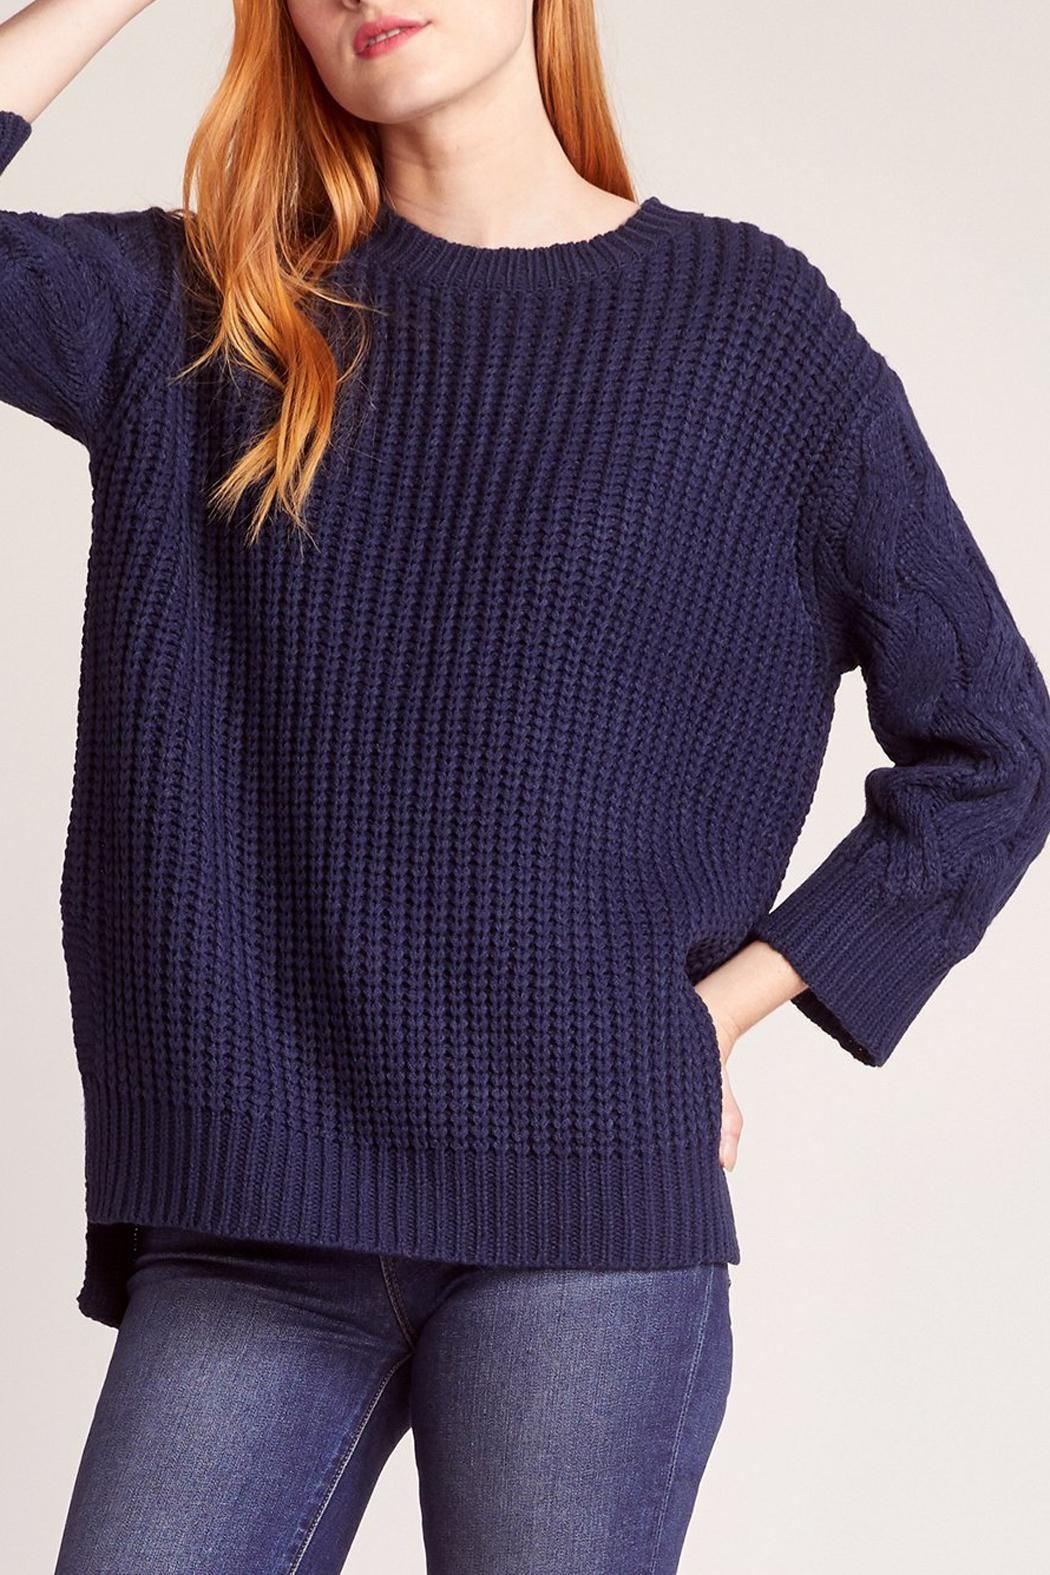 2132d5687bf Jack by BB Dakota Got Cable Sweater from Alaska by The Beauty Room ...